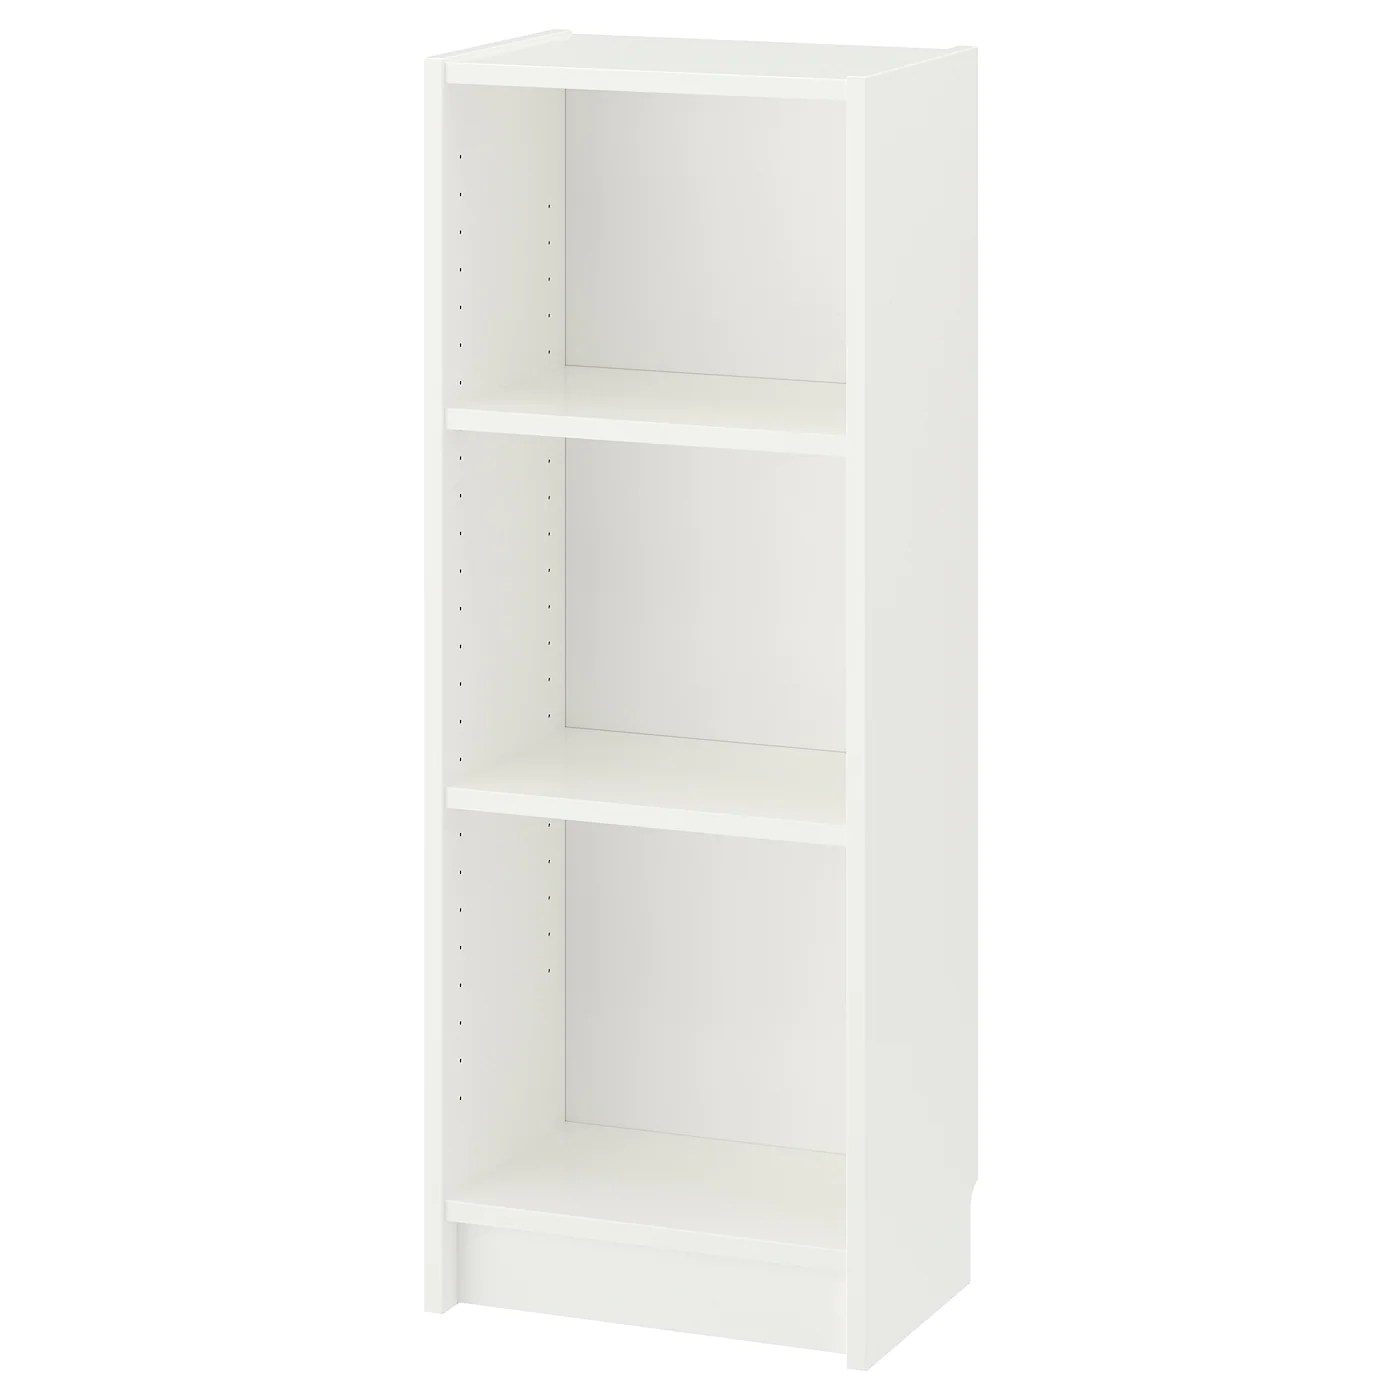 Ikea Billy Bookcase White Billy Bookcase White 40 X 28 X 106 Cm Ikea